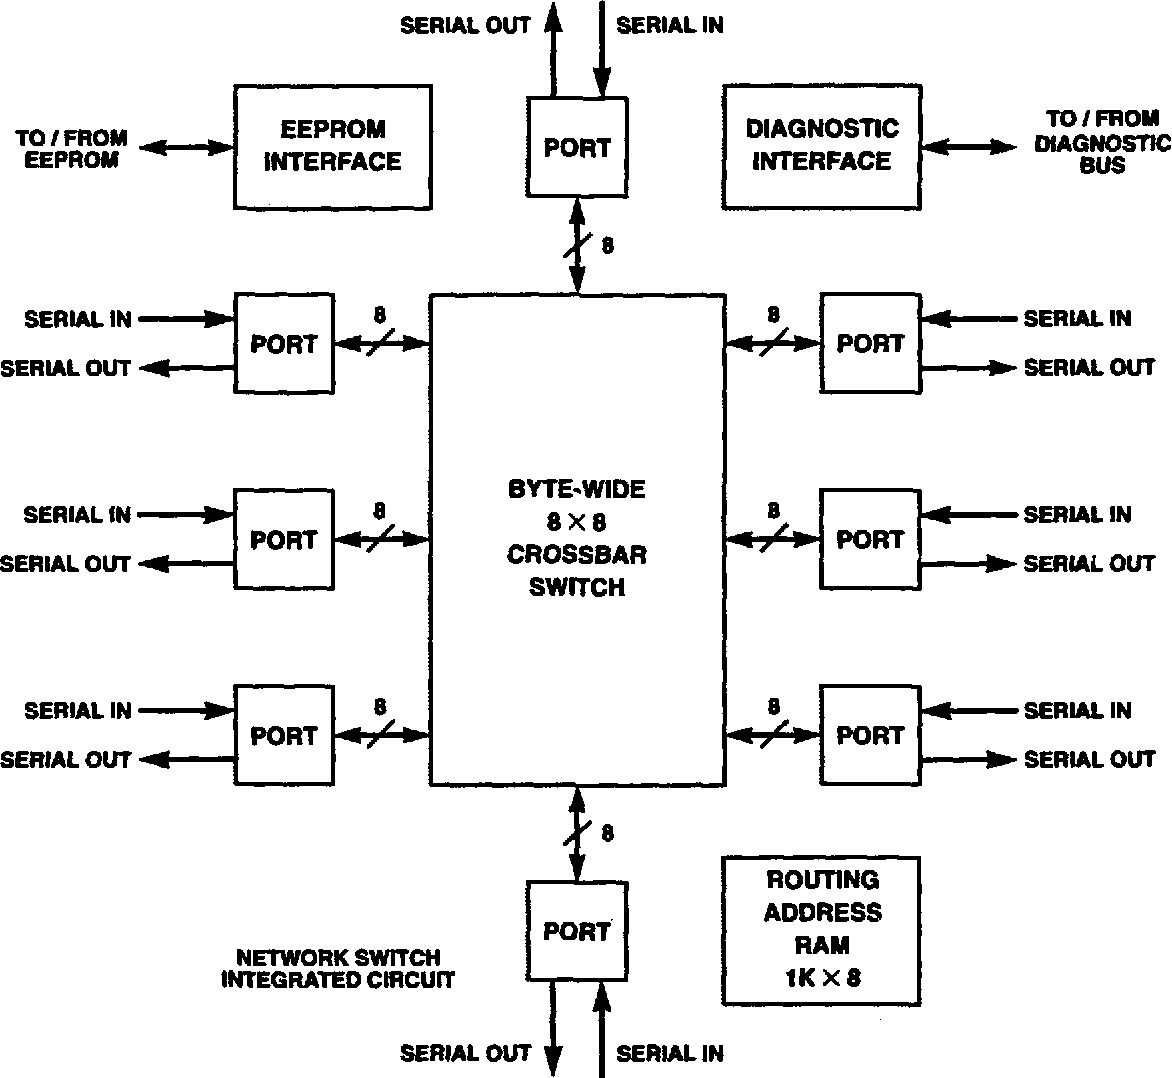 hight resolution of simplified block diagram of network switch